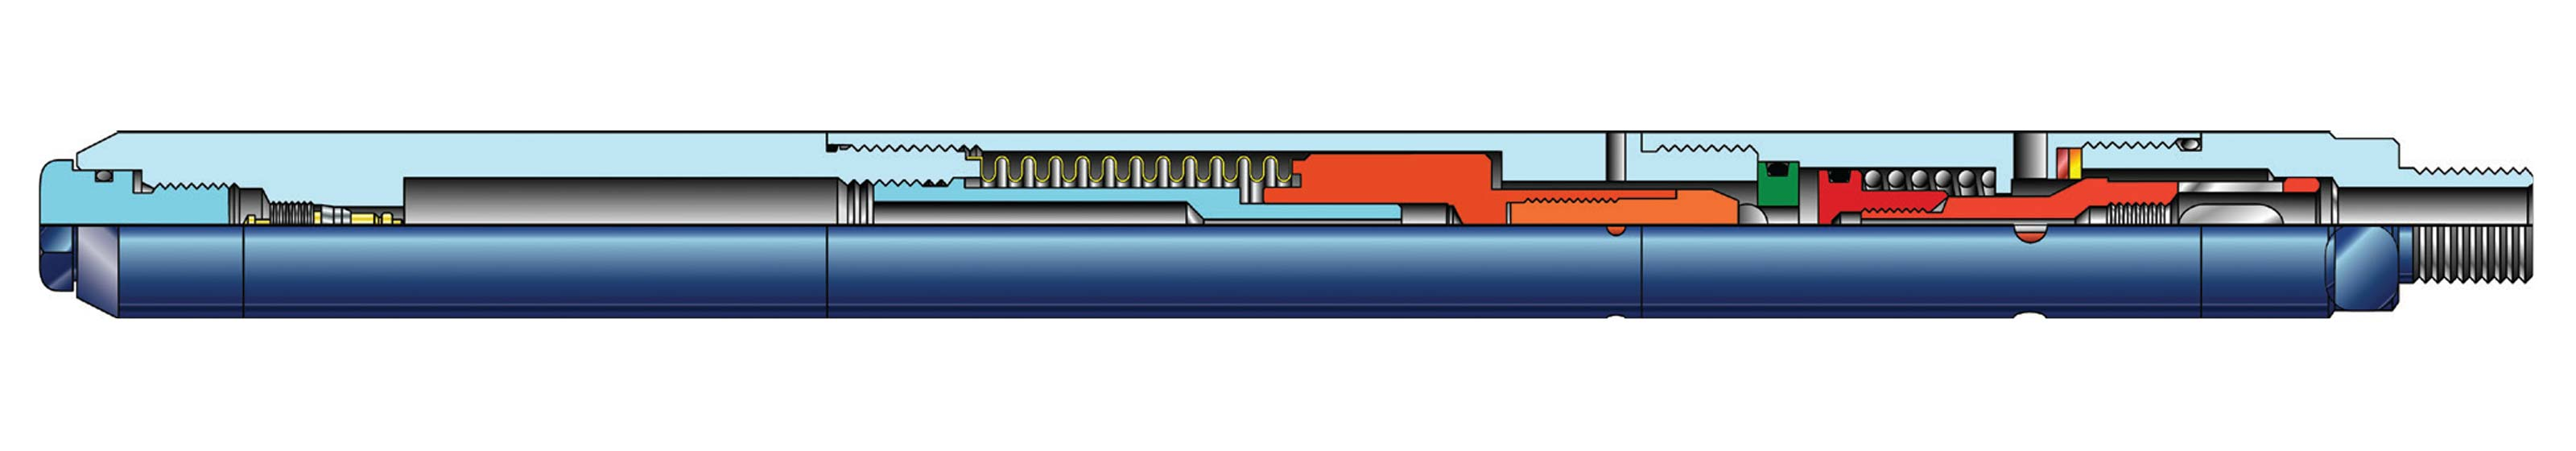 Conventional Pilot Operated Valves